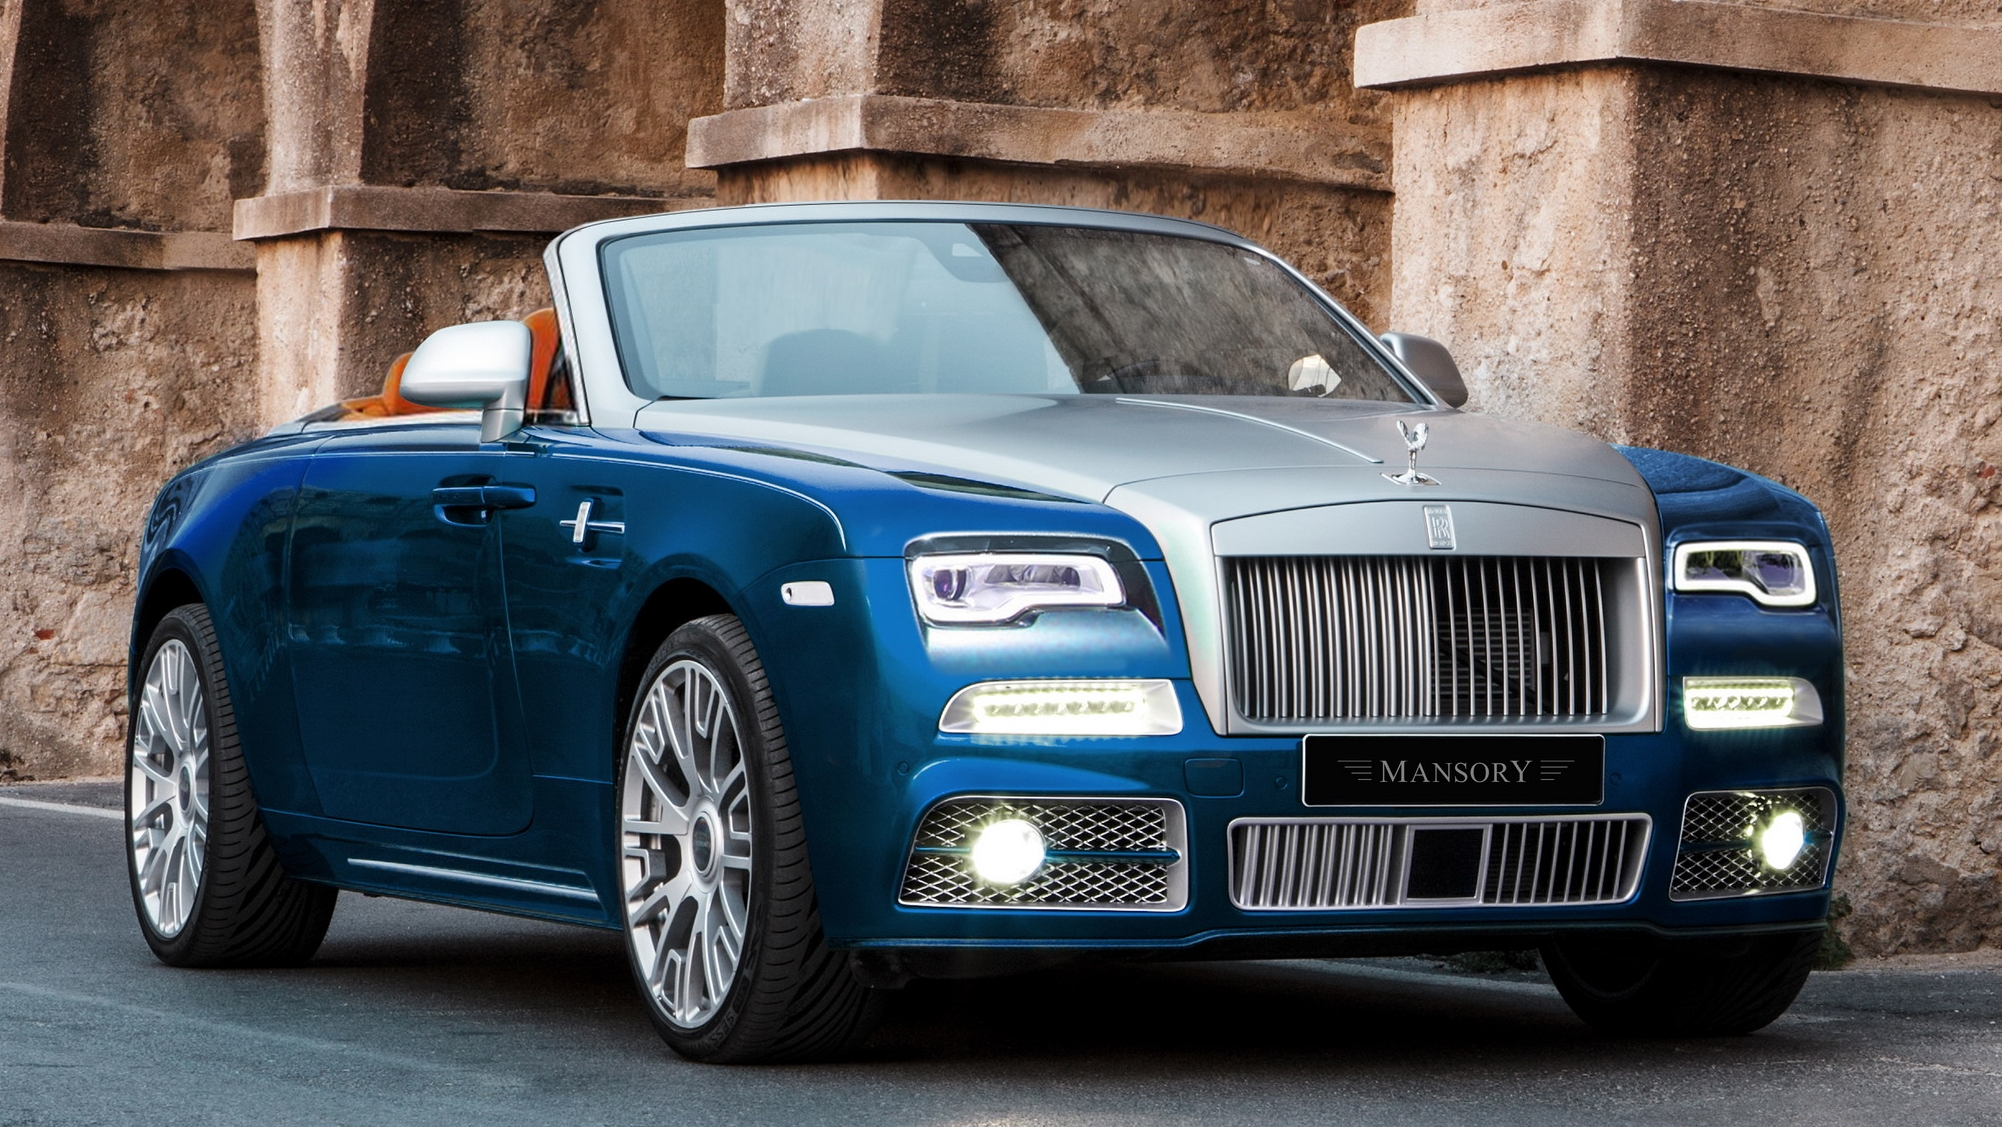 Rolls Royce Just Teased The Don Of Driverless Cars Rolls Royce Just Teased The Don Of Driverless Cars new pictures